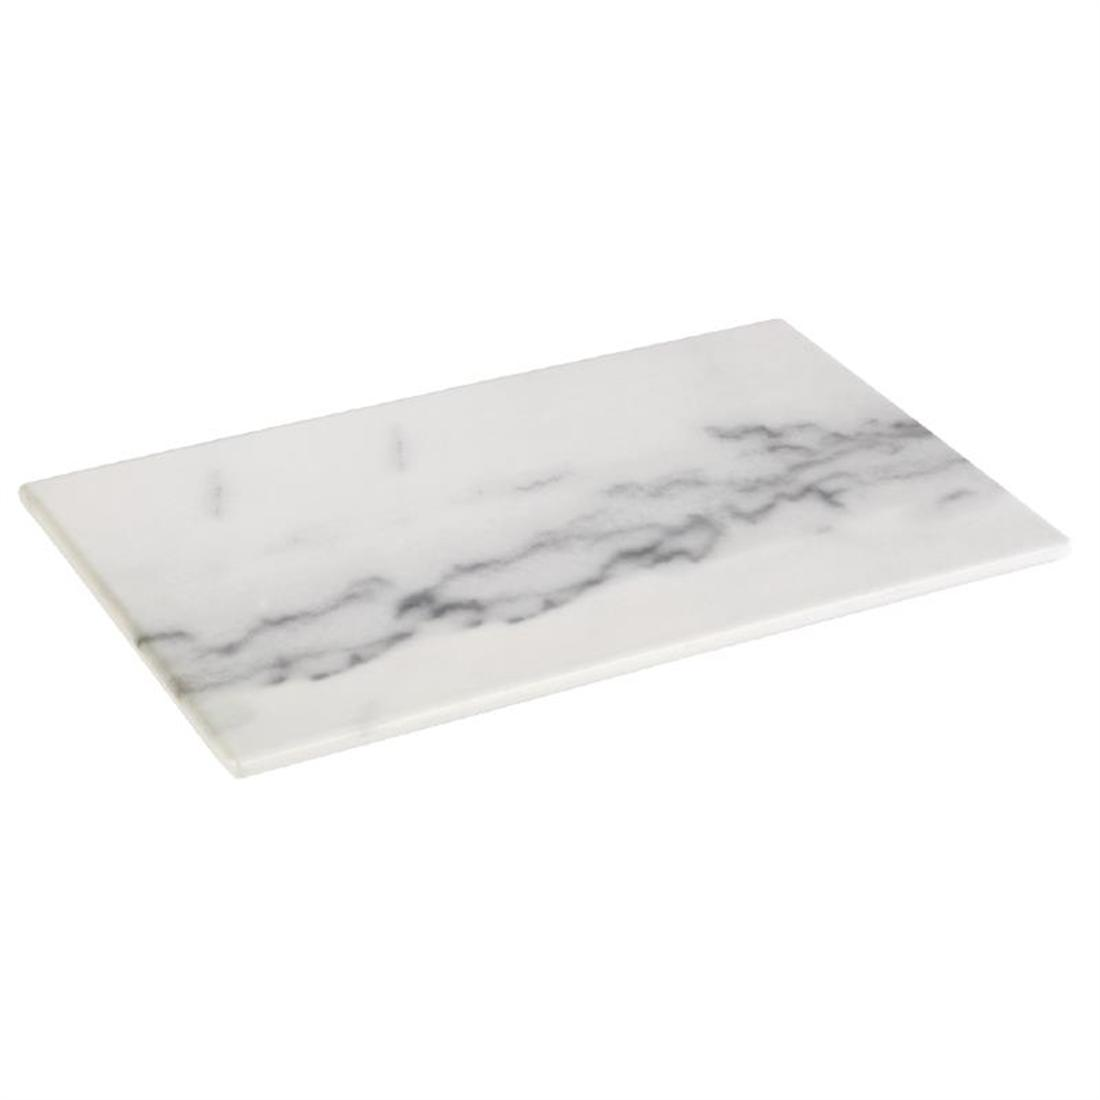 HC755 - Z-DISCONTINUED APS Melamine Tray Marble GN 1/4 - Each - HC755